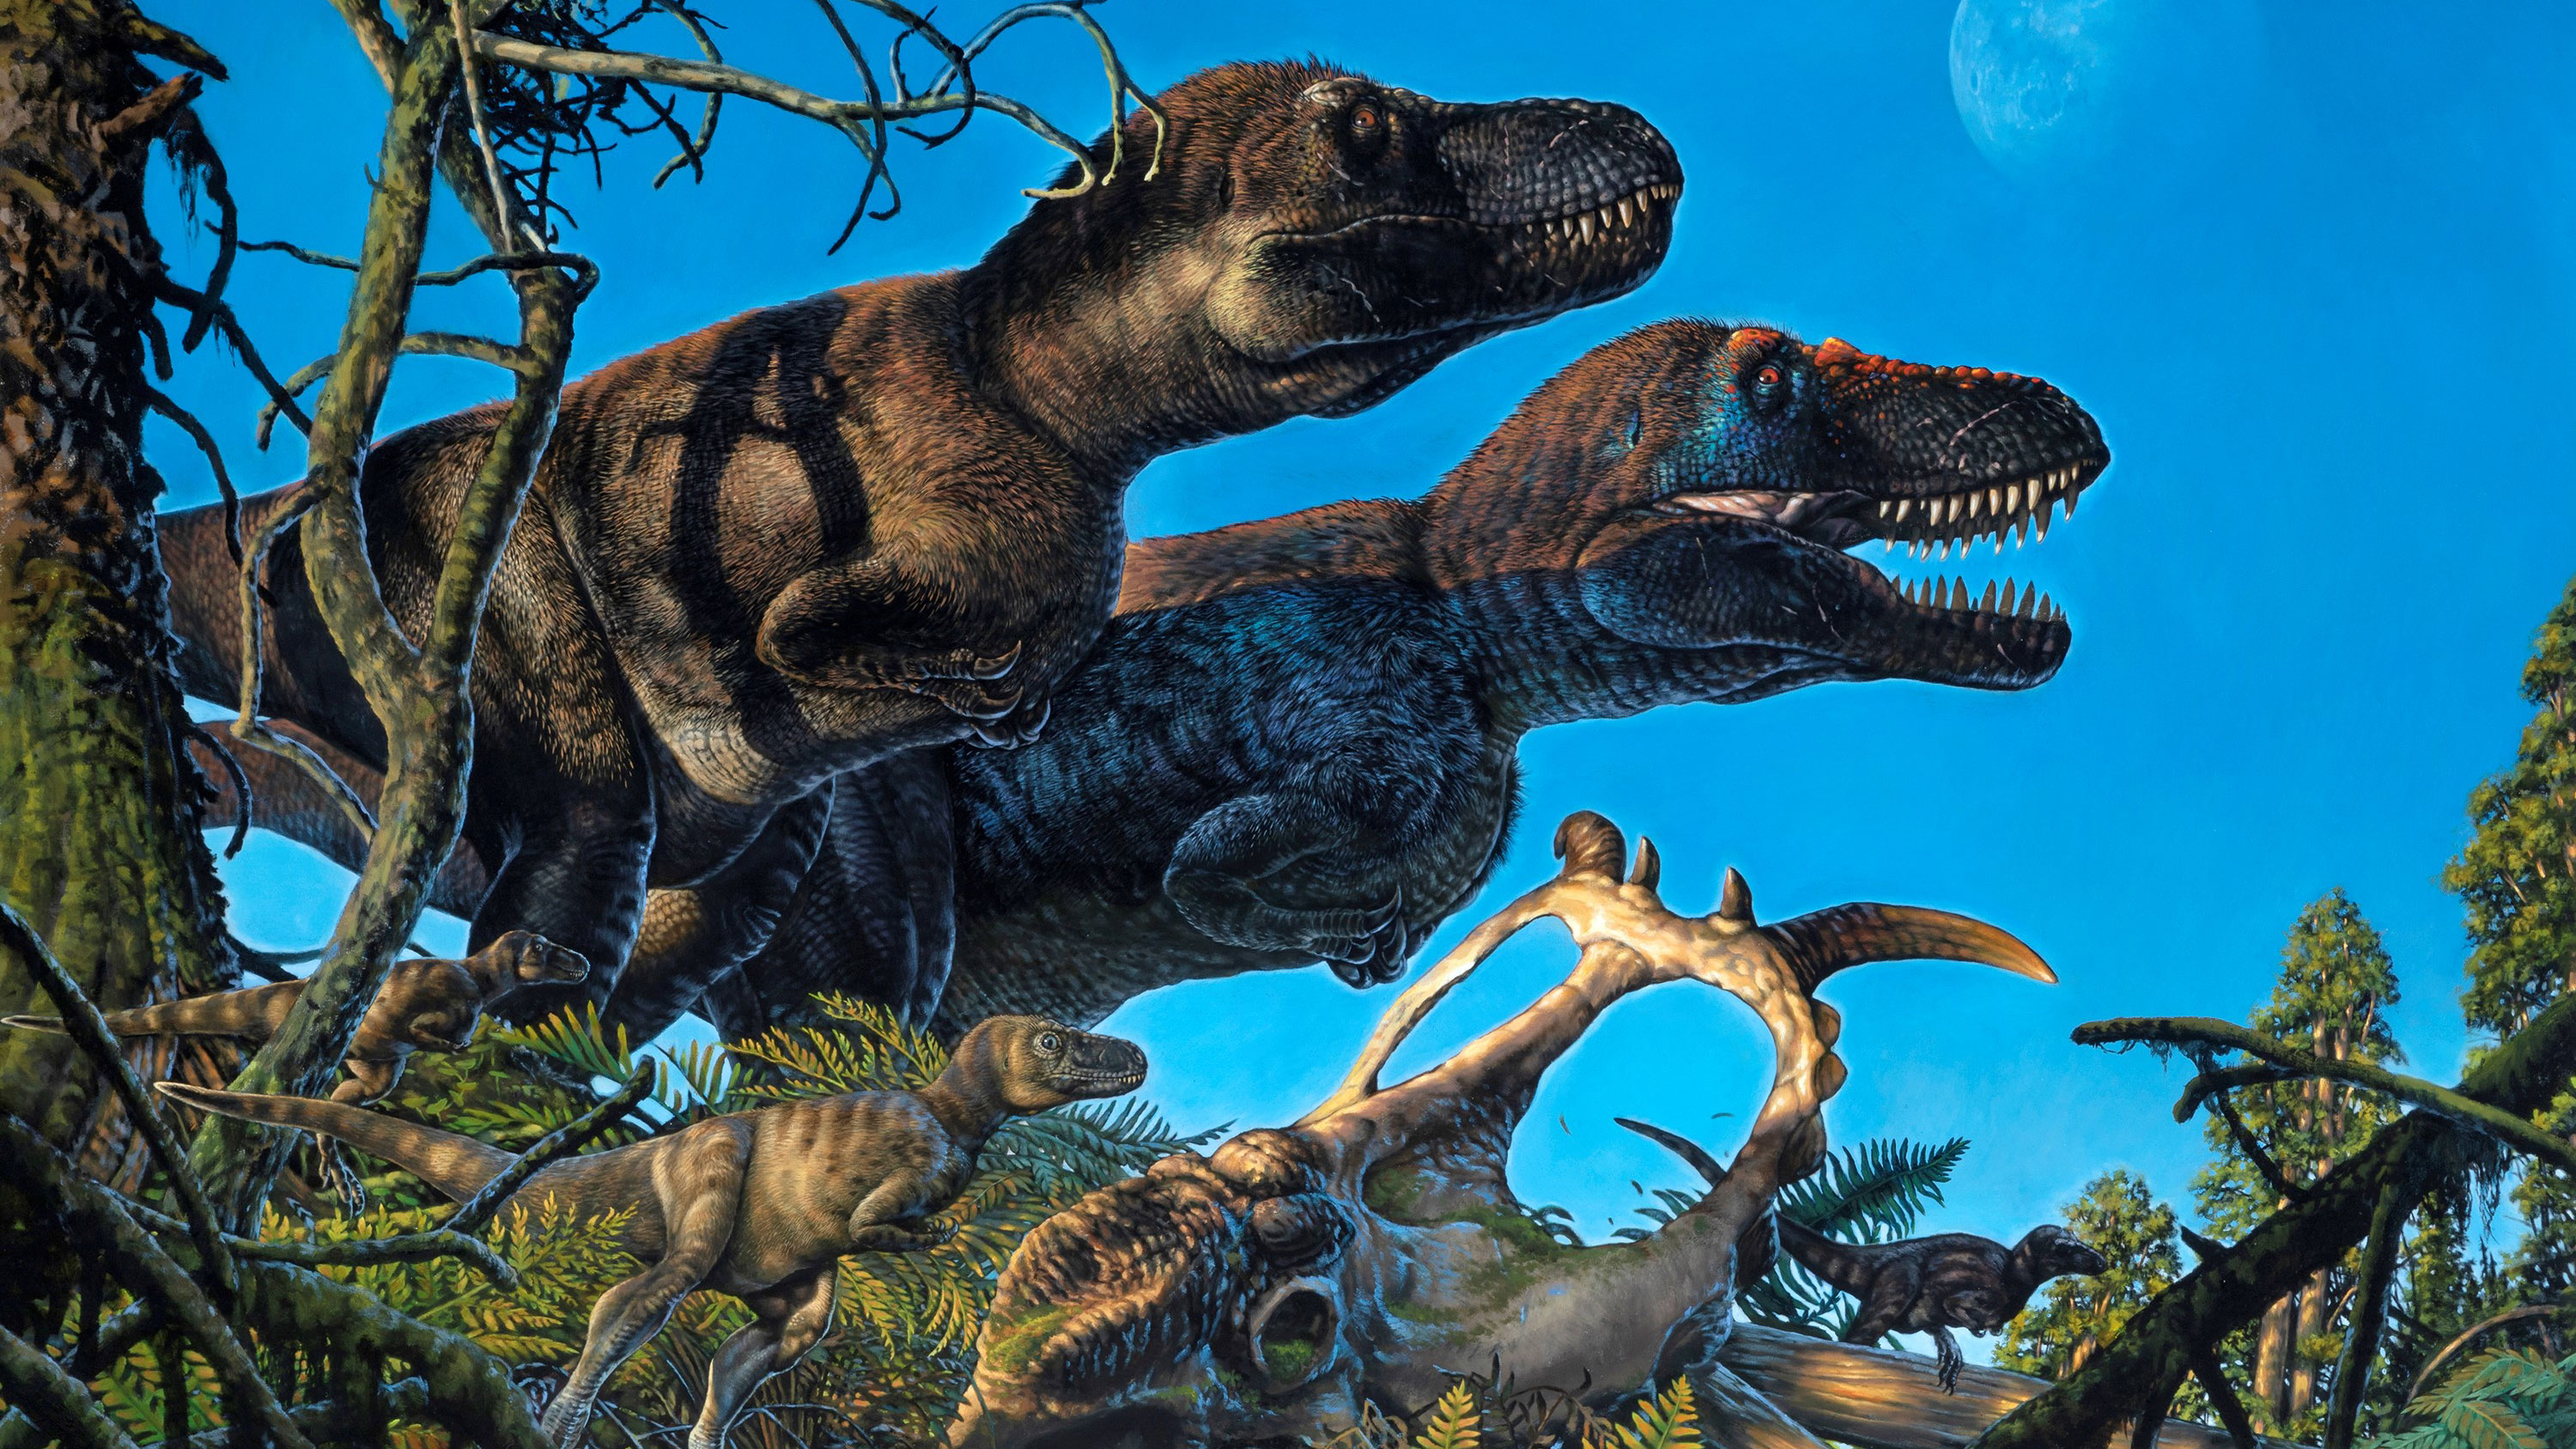 'Polar dinosaurs' may have given birth in the Arctic over 70 million years ago, study finds